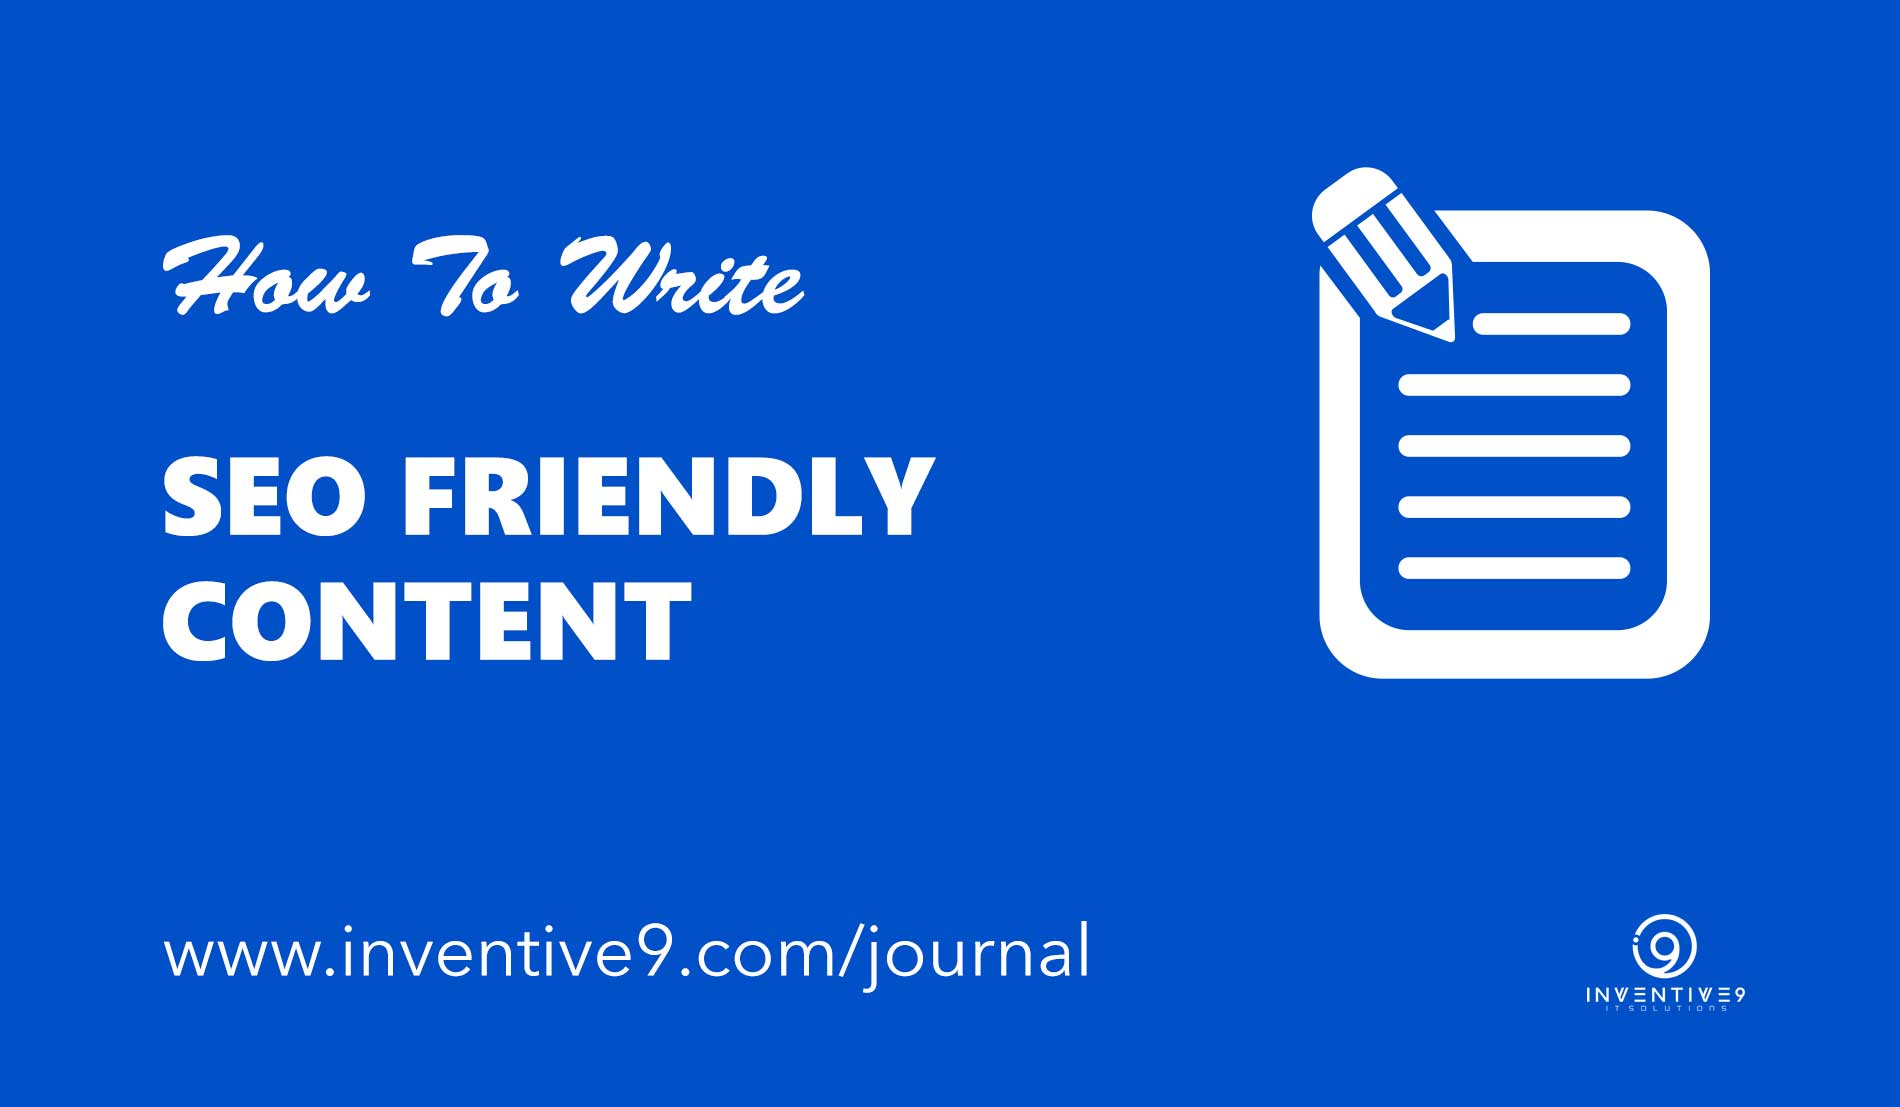 how-to-write-seo-friendly-content